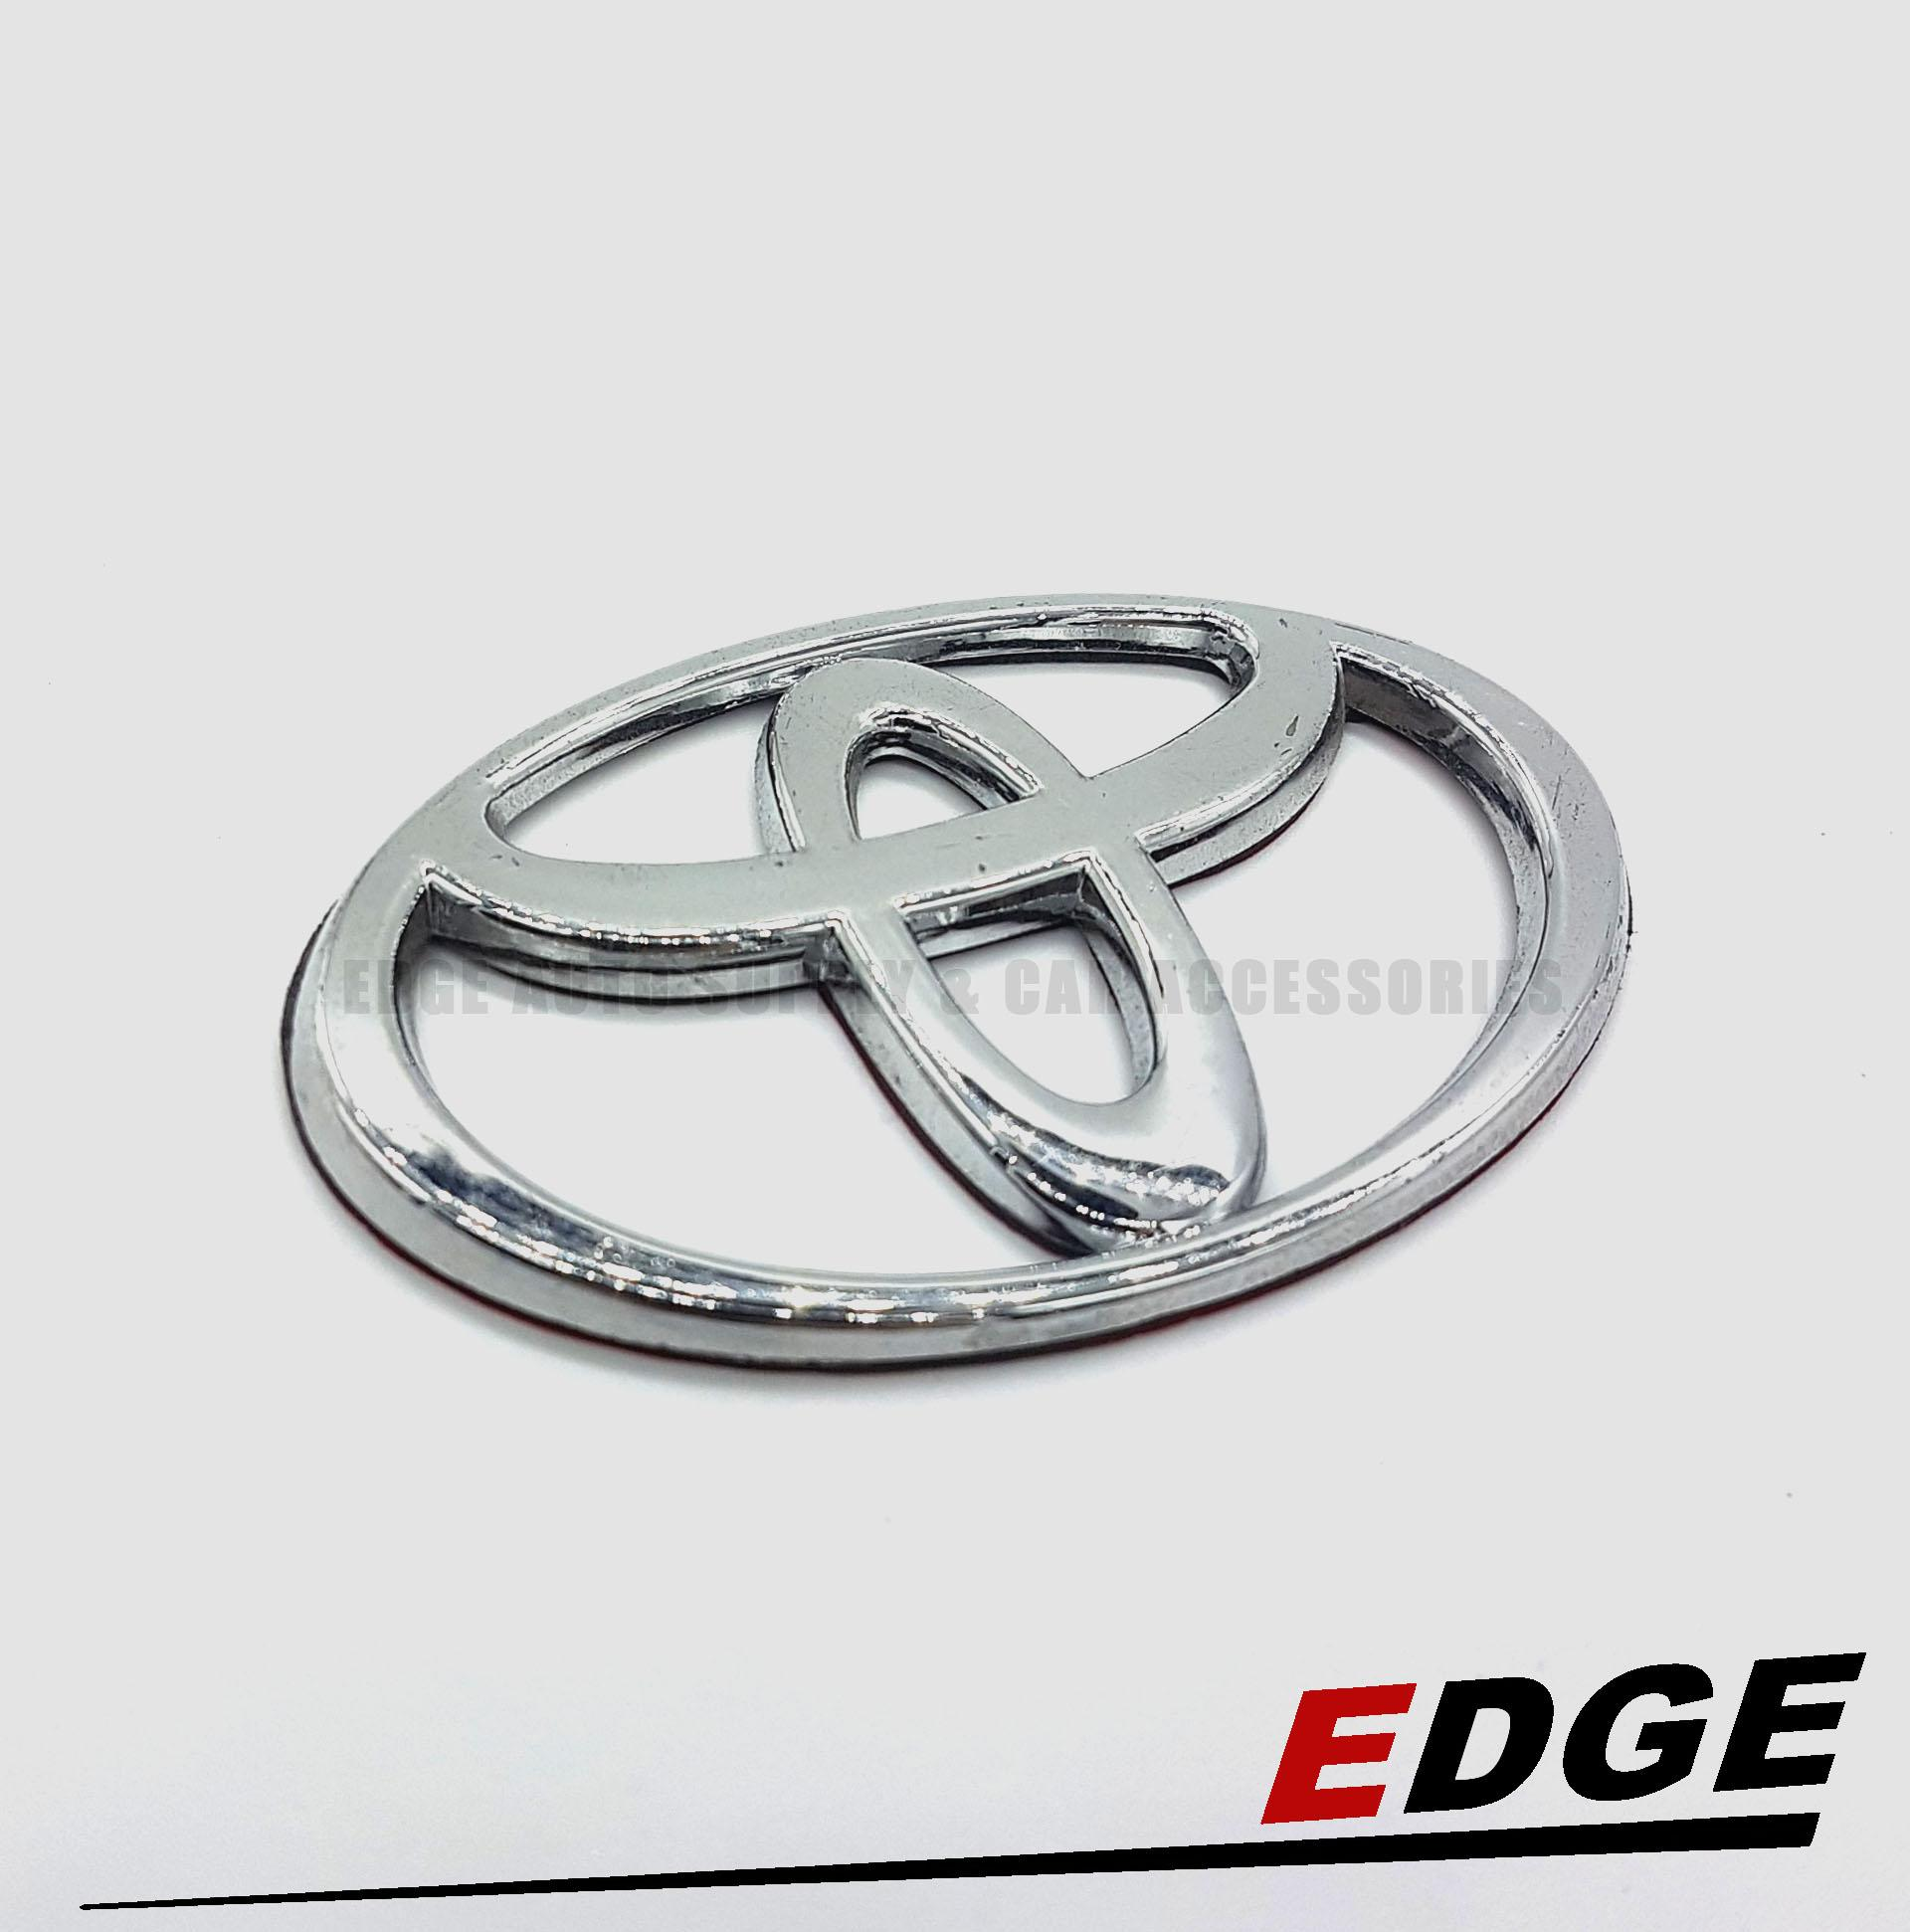 Car Emblems For Sale Auto Logo Online Brands Prices Reviews In - Audi car emblem